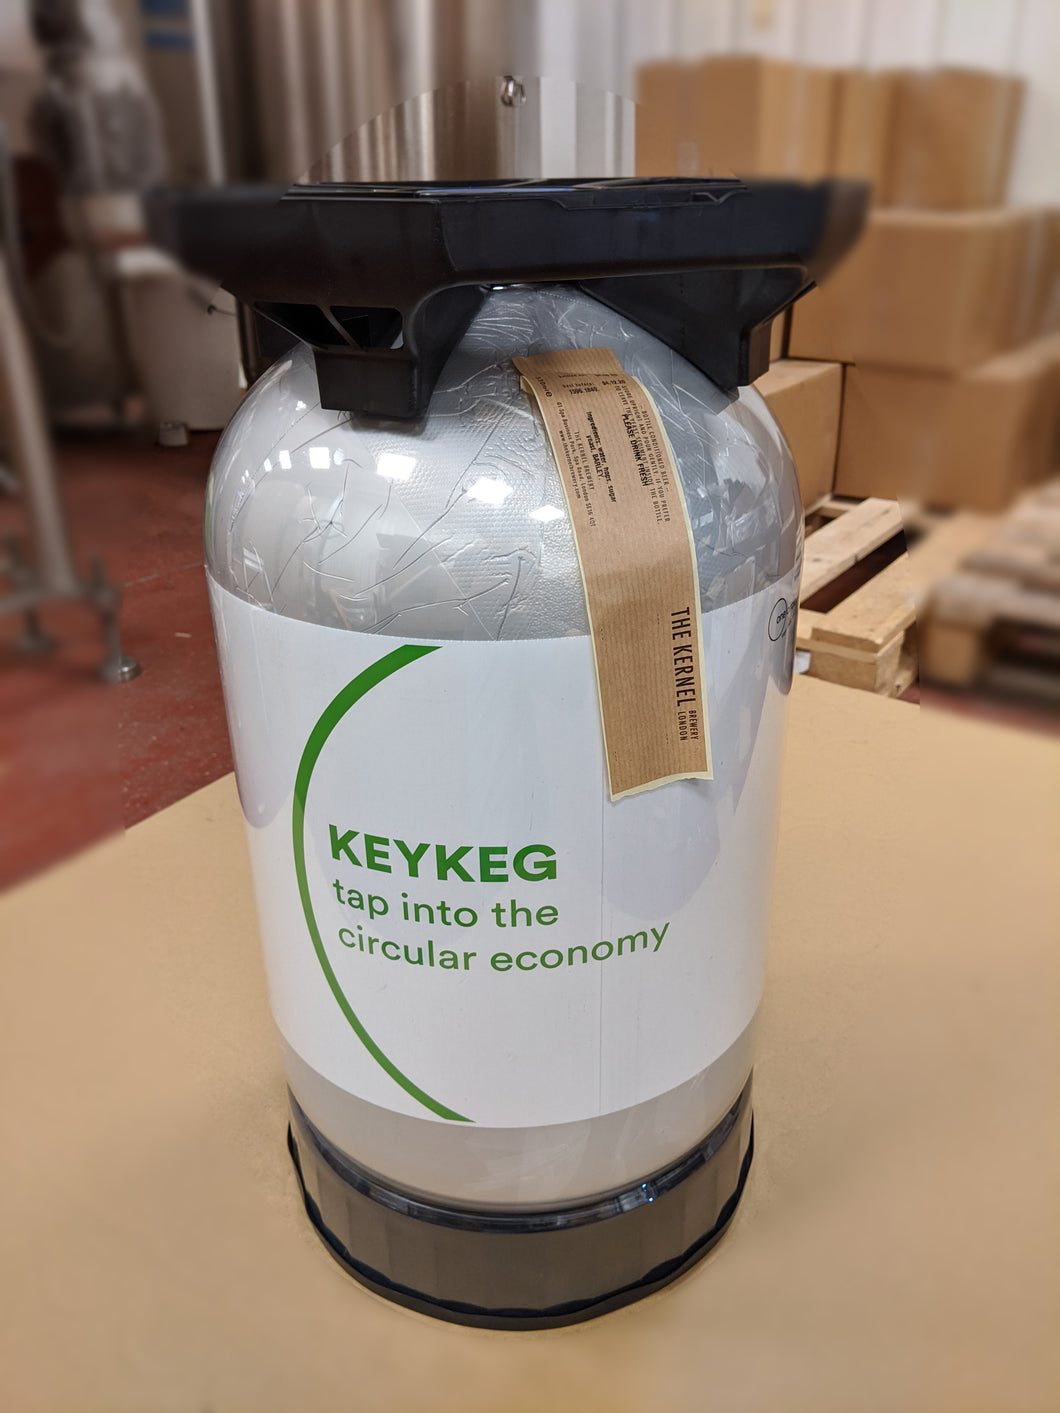 Table Beer, 3%, 30 litre keykeg